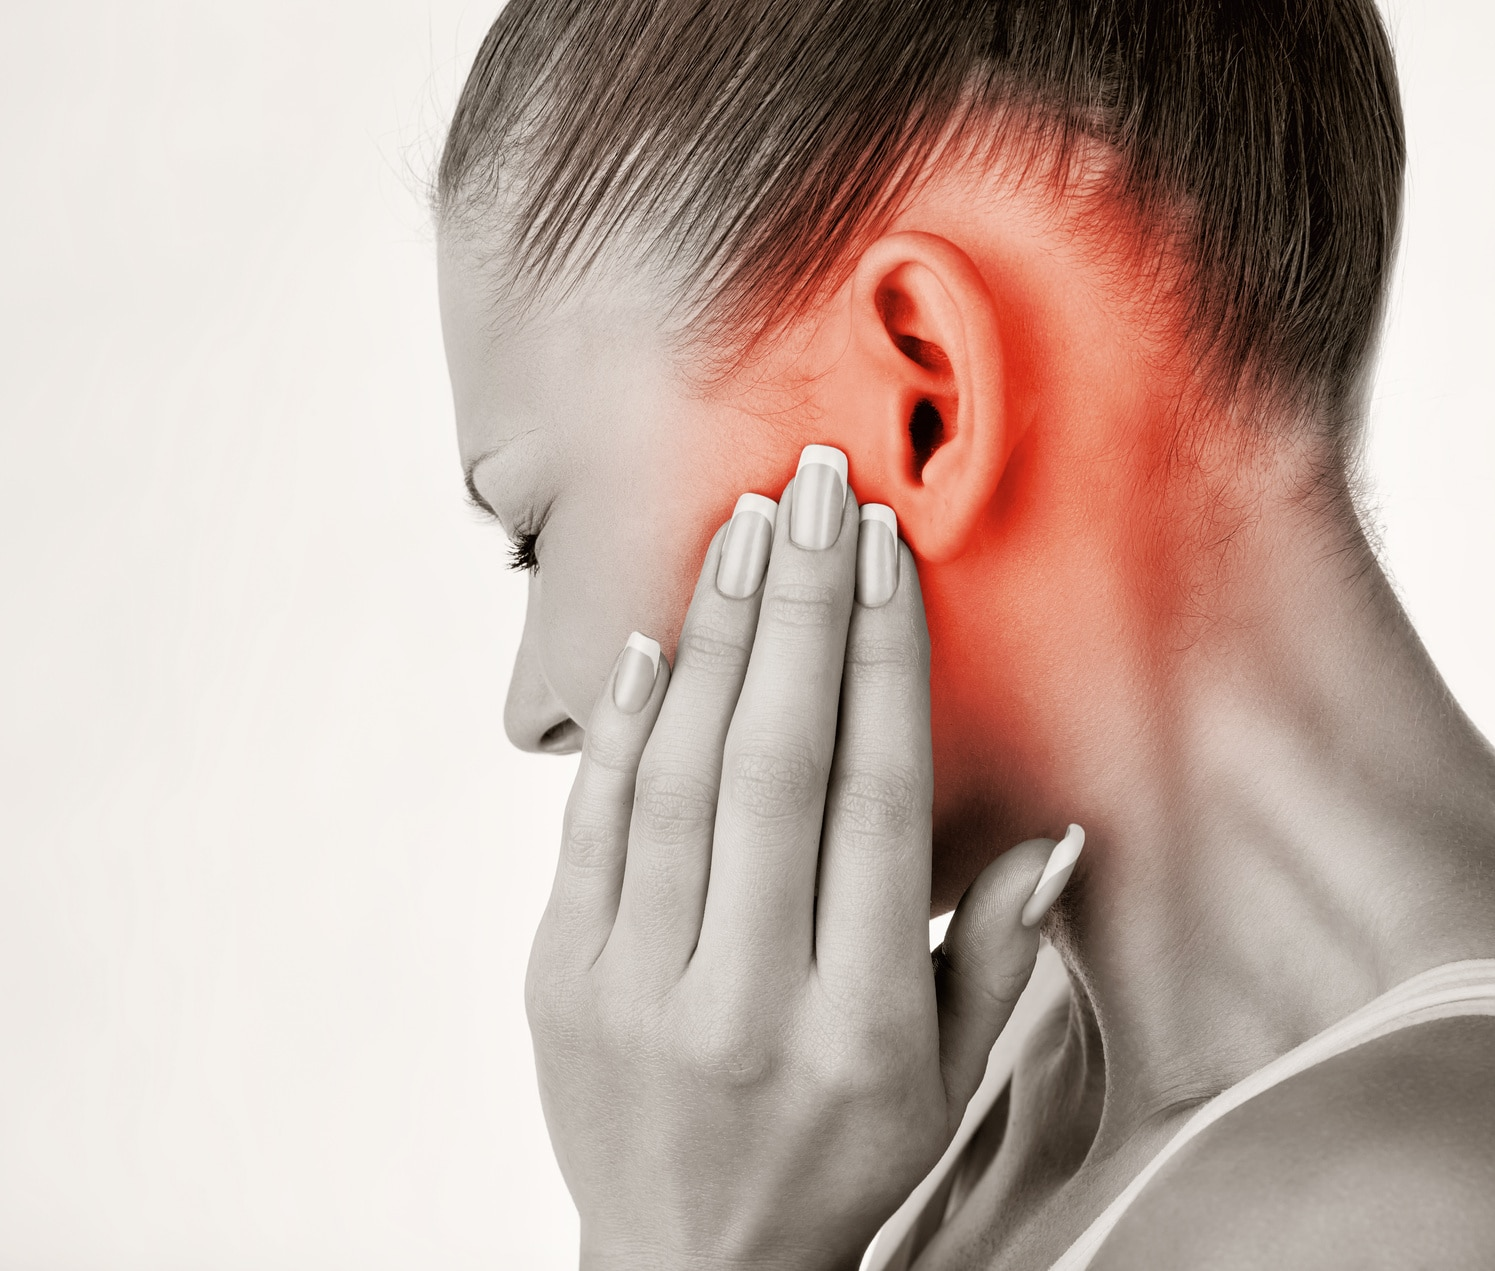 Young woman grasping ear in pain